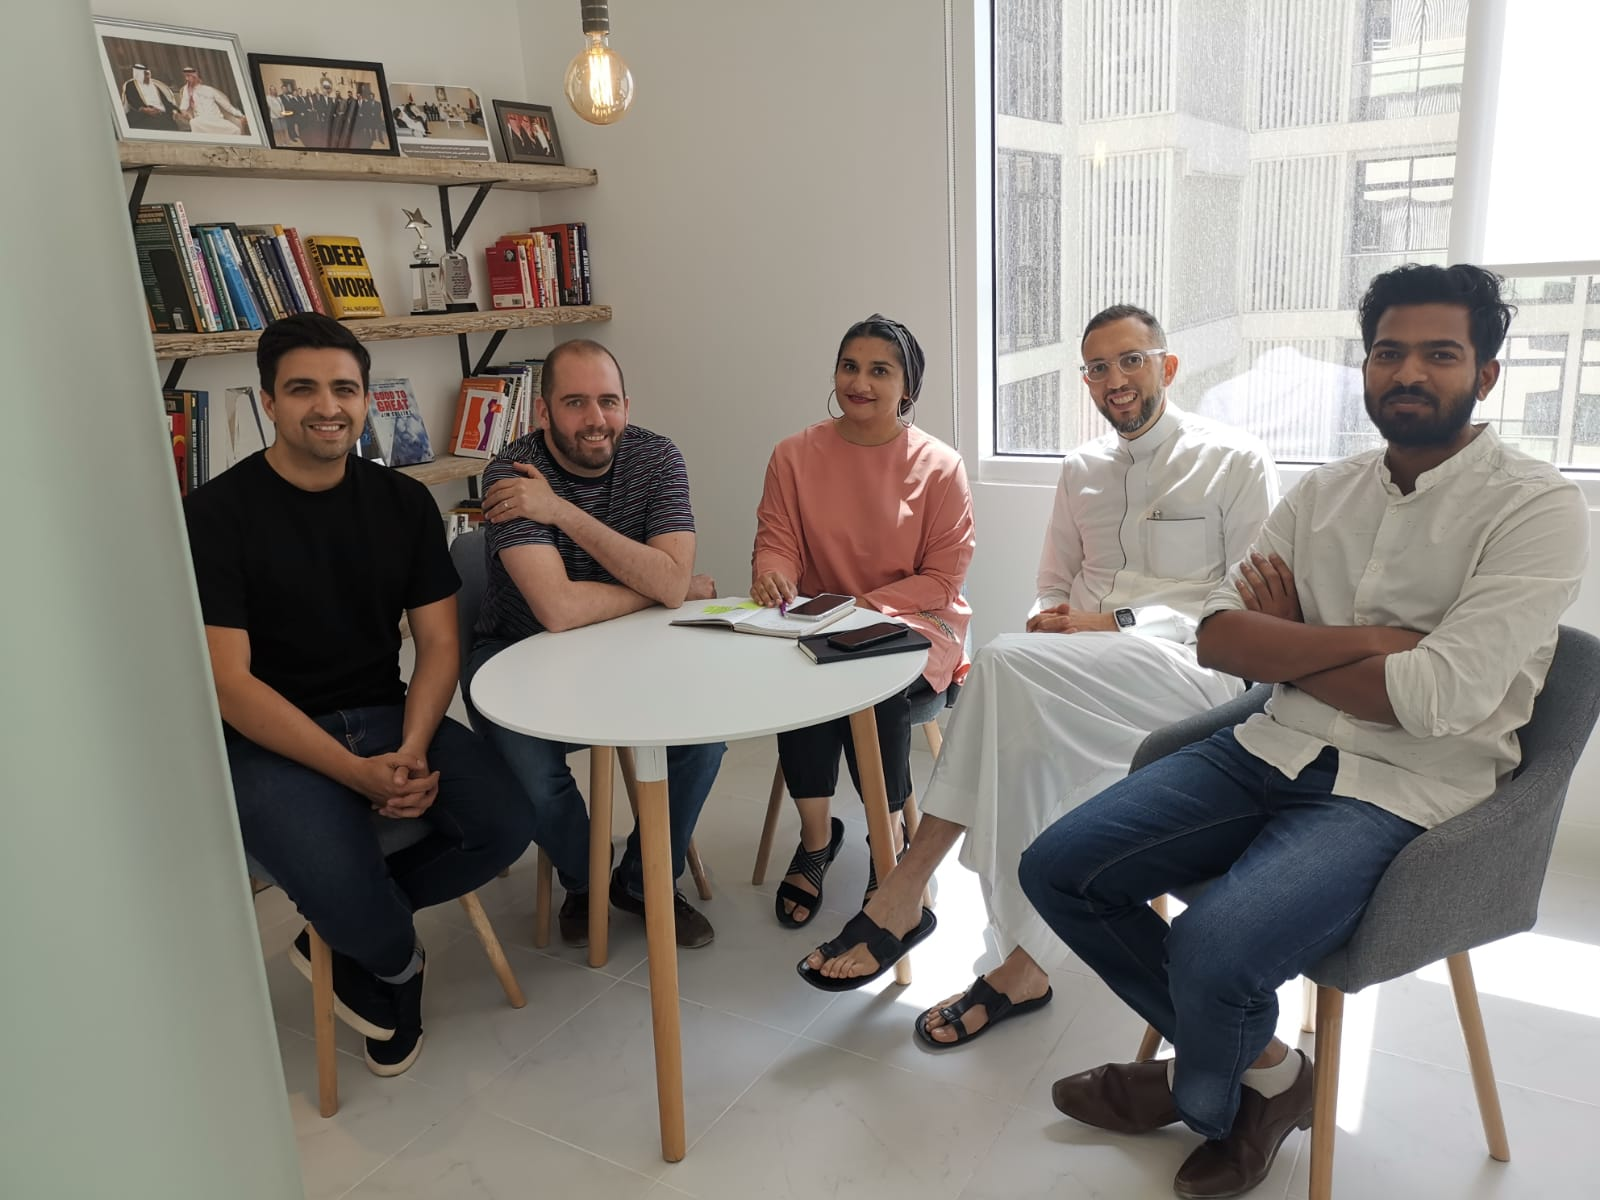 The Stories Studio bags $70K in its 1st follow-on funding since graduating Flat6Labs Bahrain